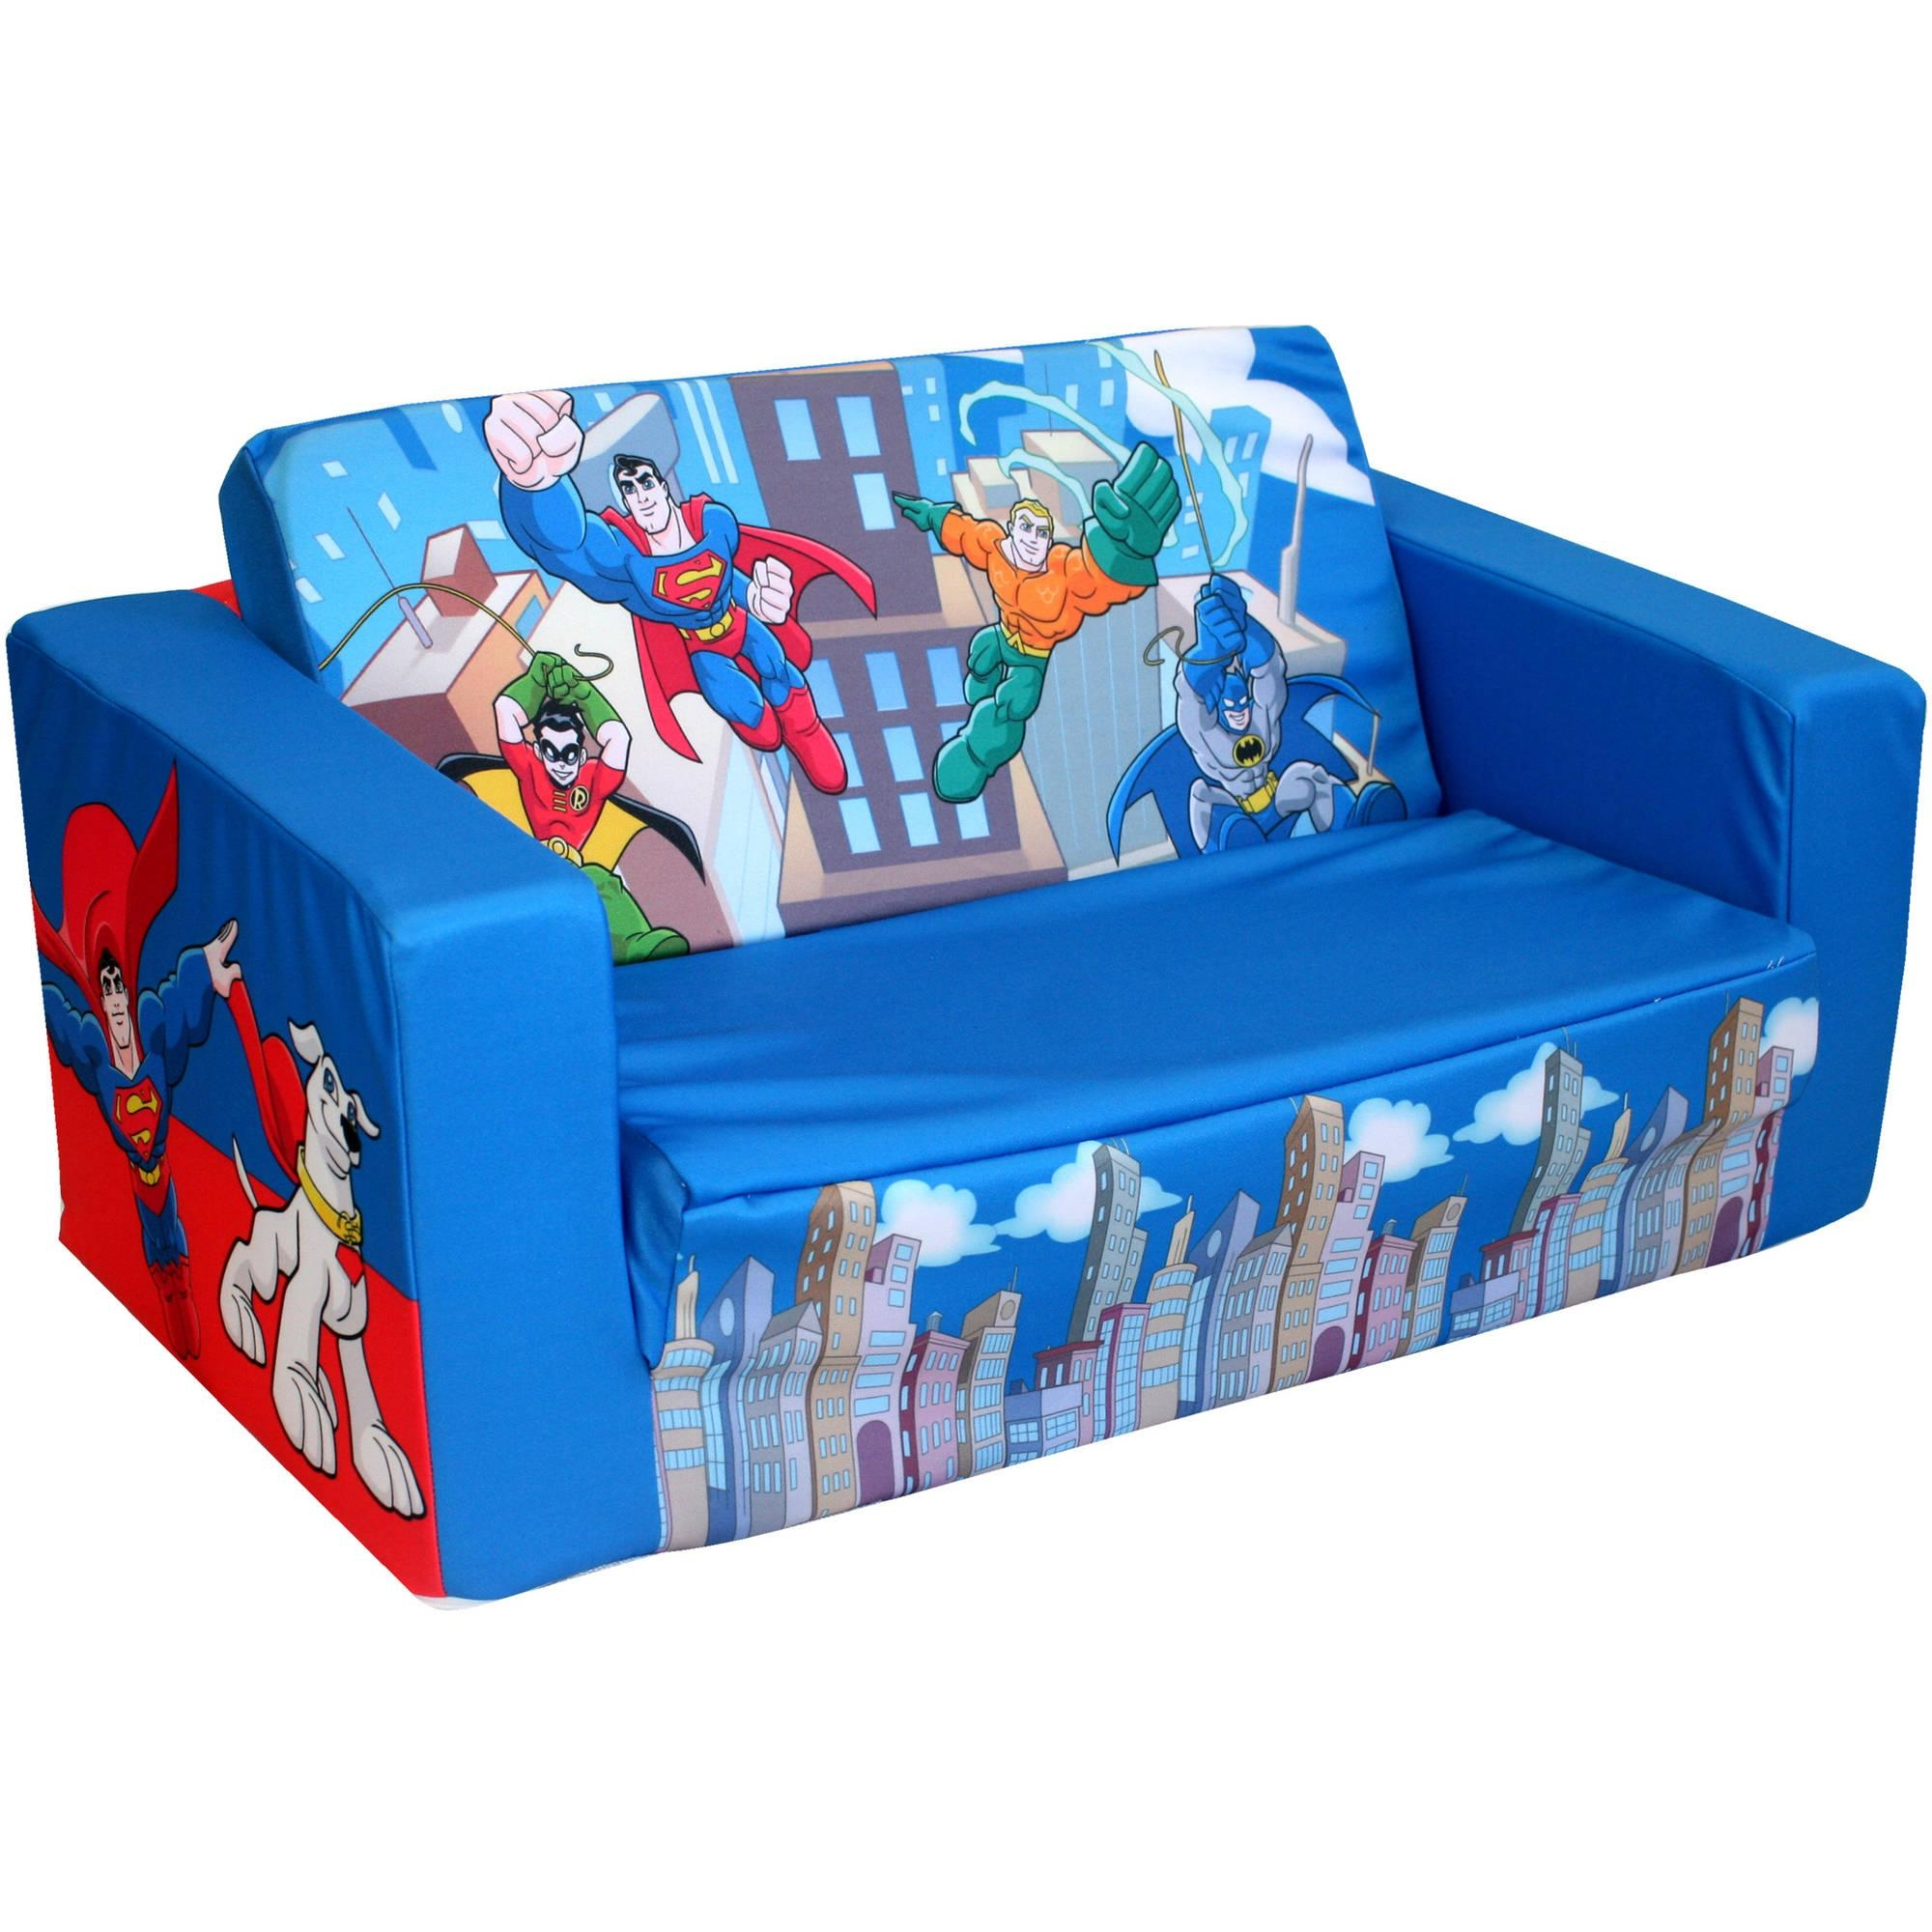 Sofas Center : Awesome Toddler Fold Out Sofa Pictures Concept Regarding Mickey Fold Out Couches (View 3 of 20)